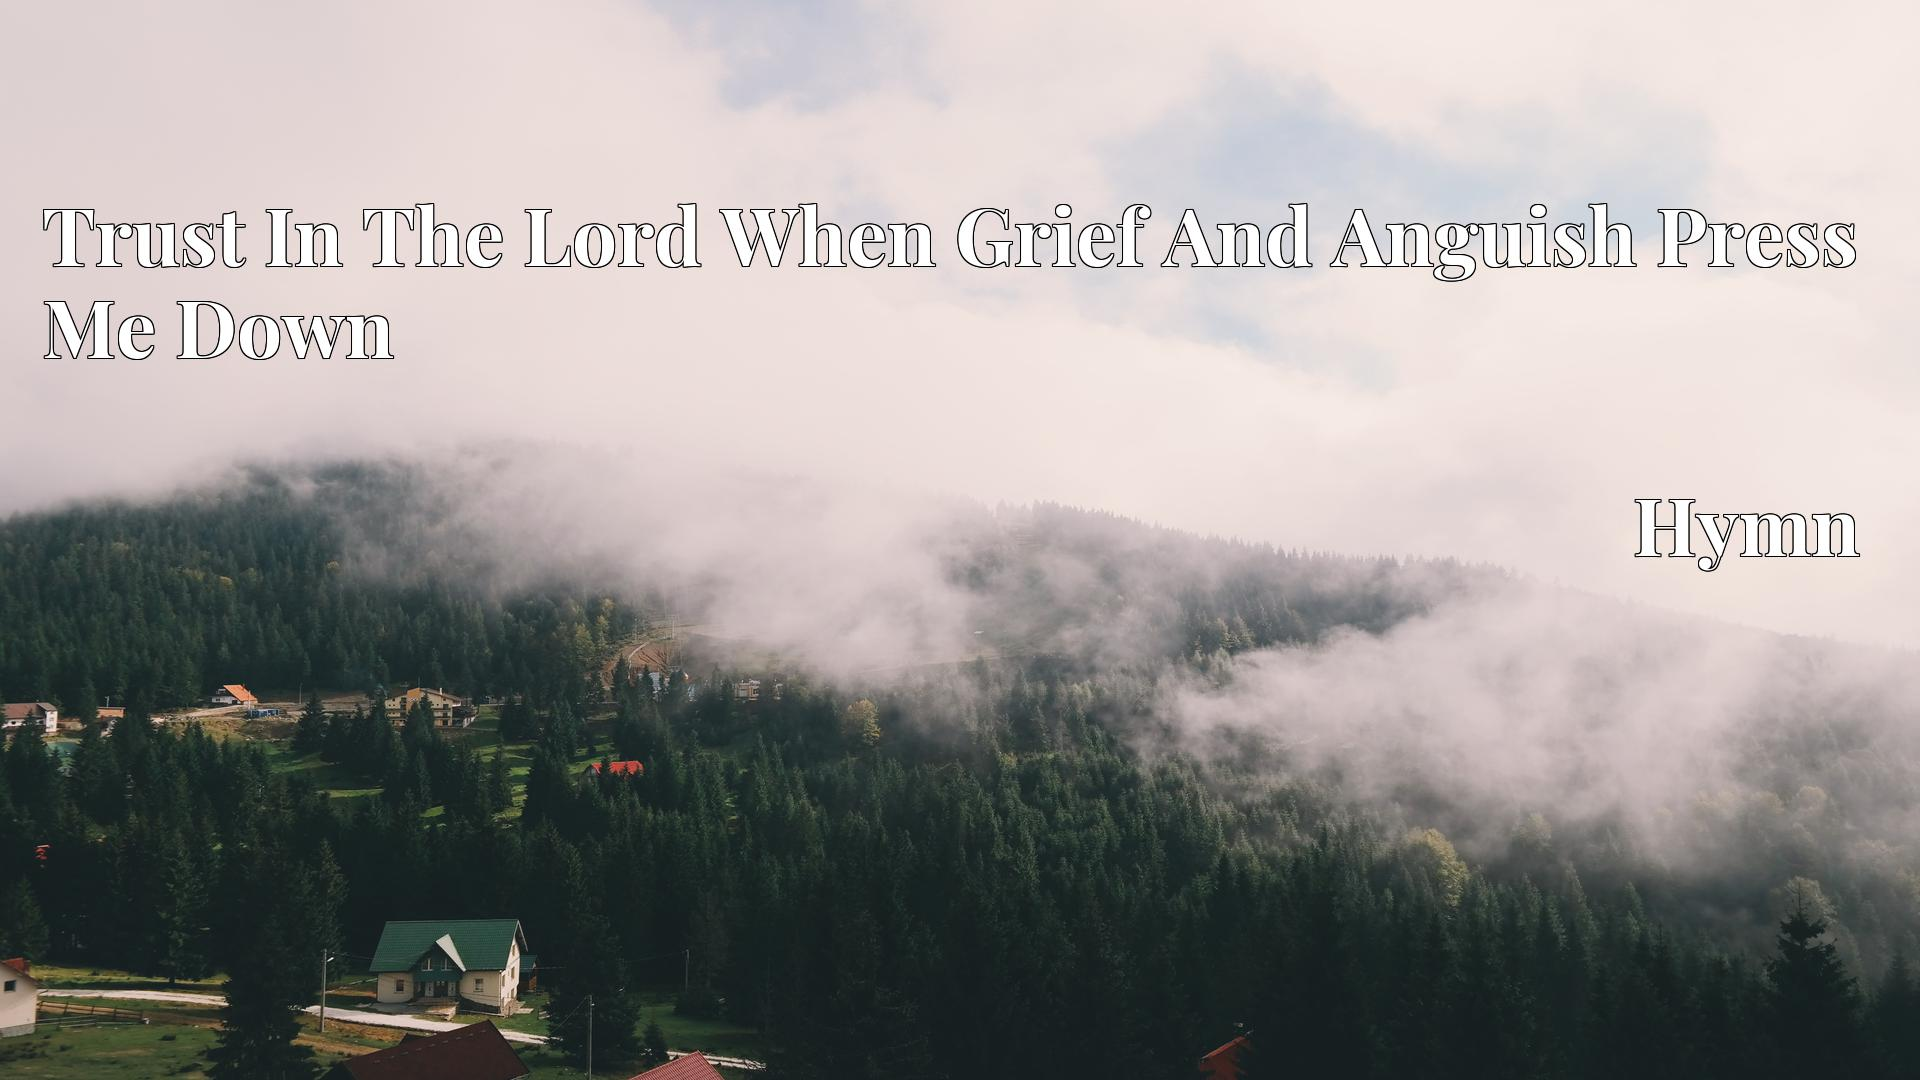 Trust In The Lord When Grief And Anguish Press Me Down - Hymn